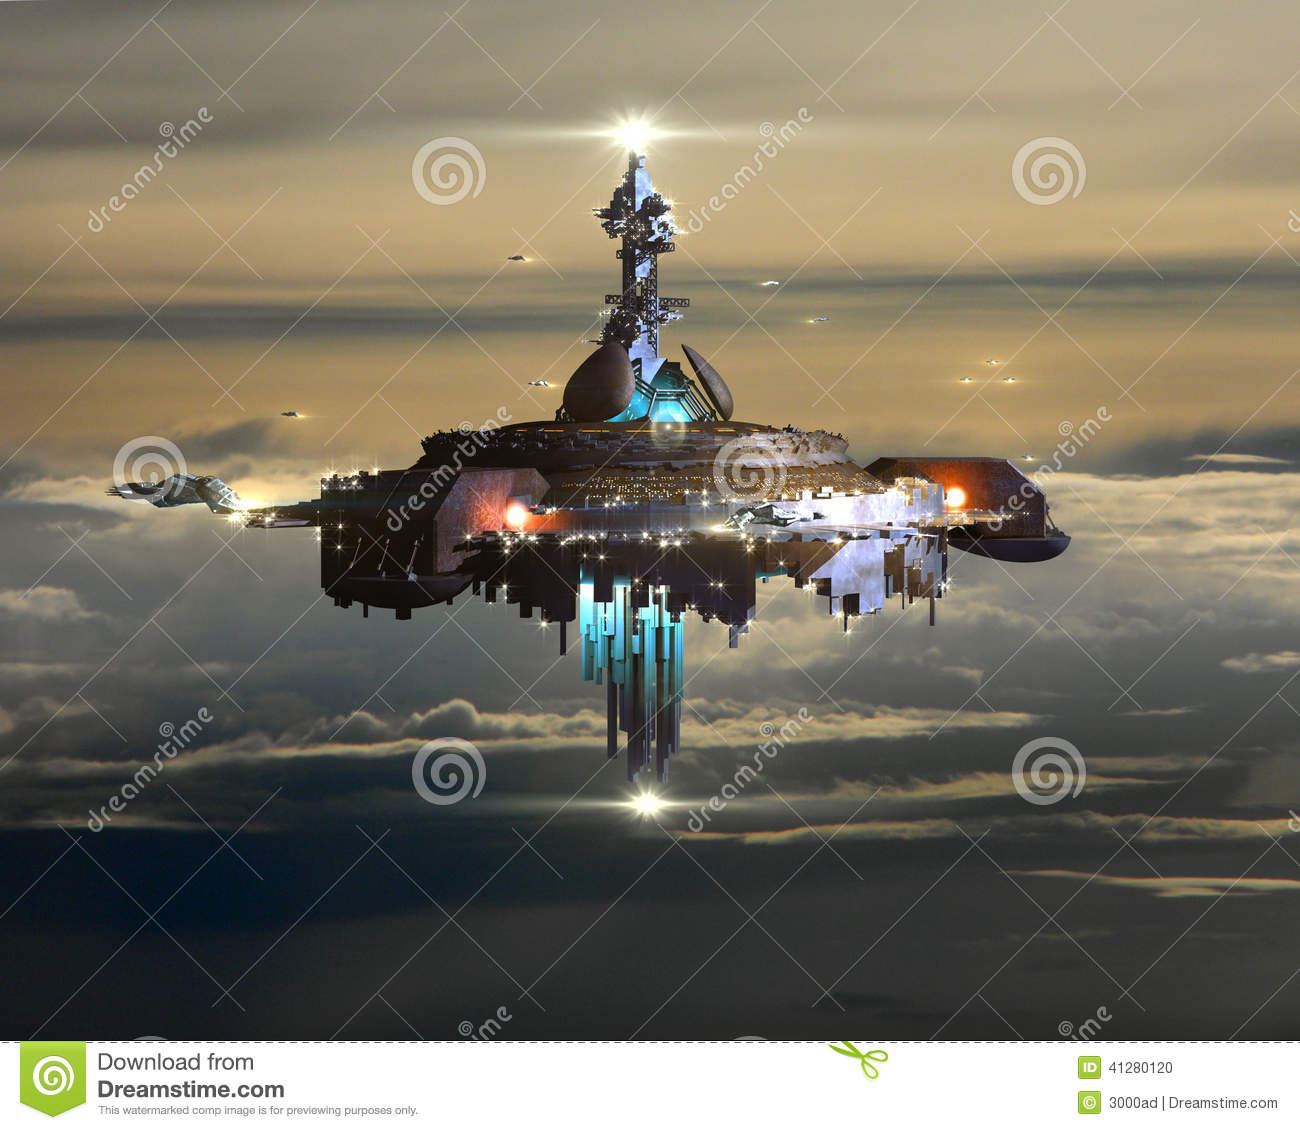 alien mothership above clouds on earth stock illustration